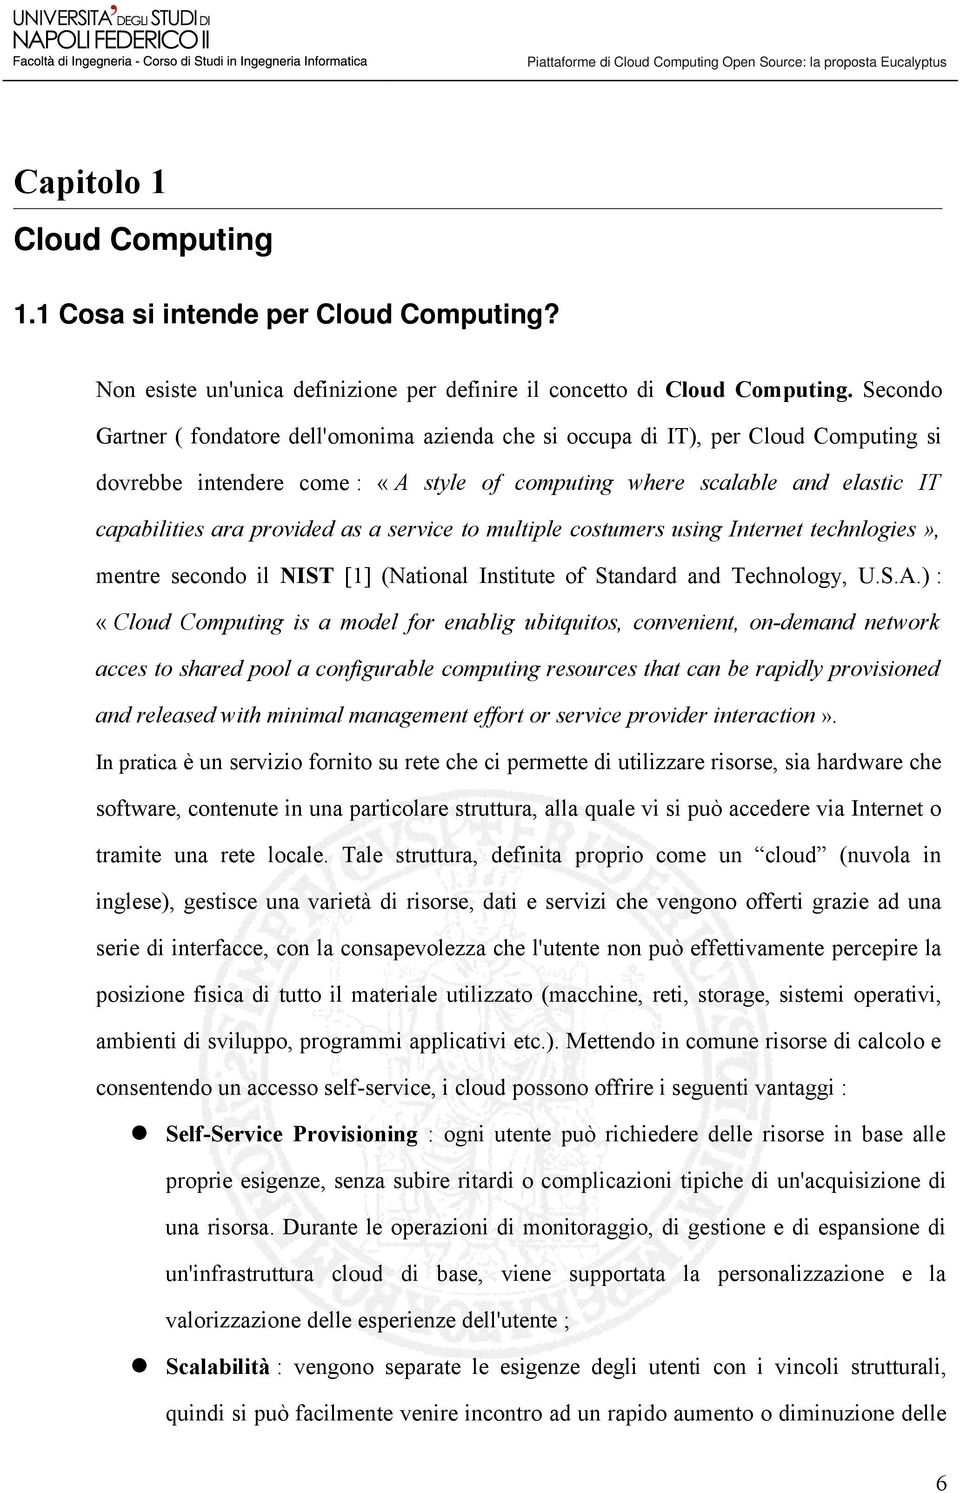 as a service to multiple costumers using Internet technlogies», mentre secondo il NIST [1] (National Institute of Standard and Technology, U.S.A.